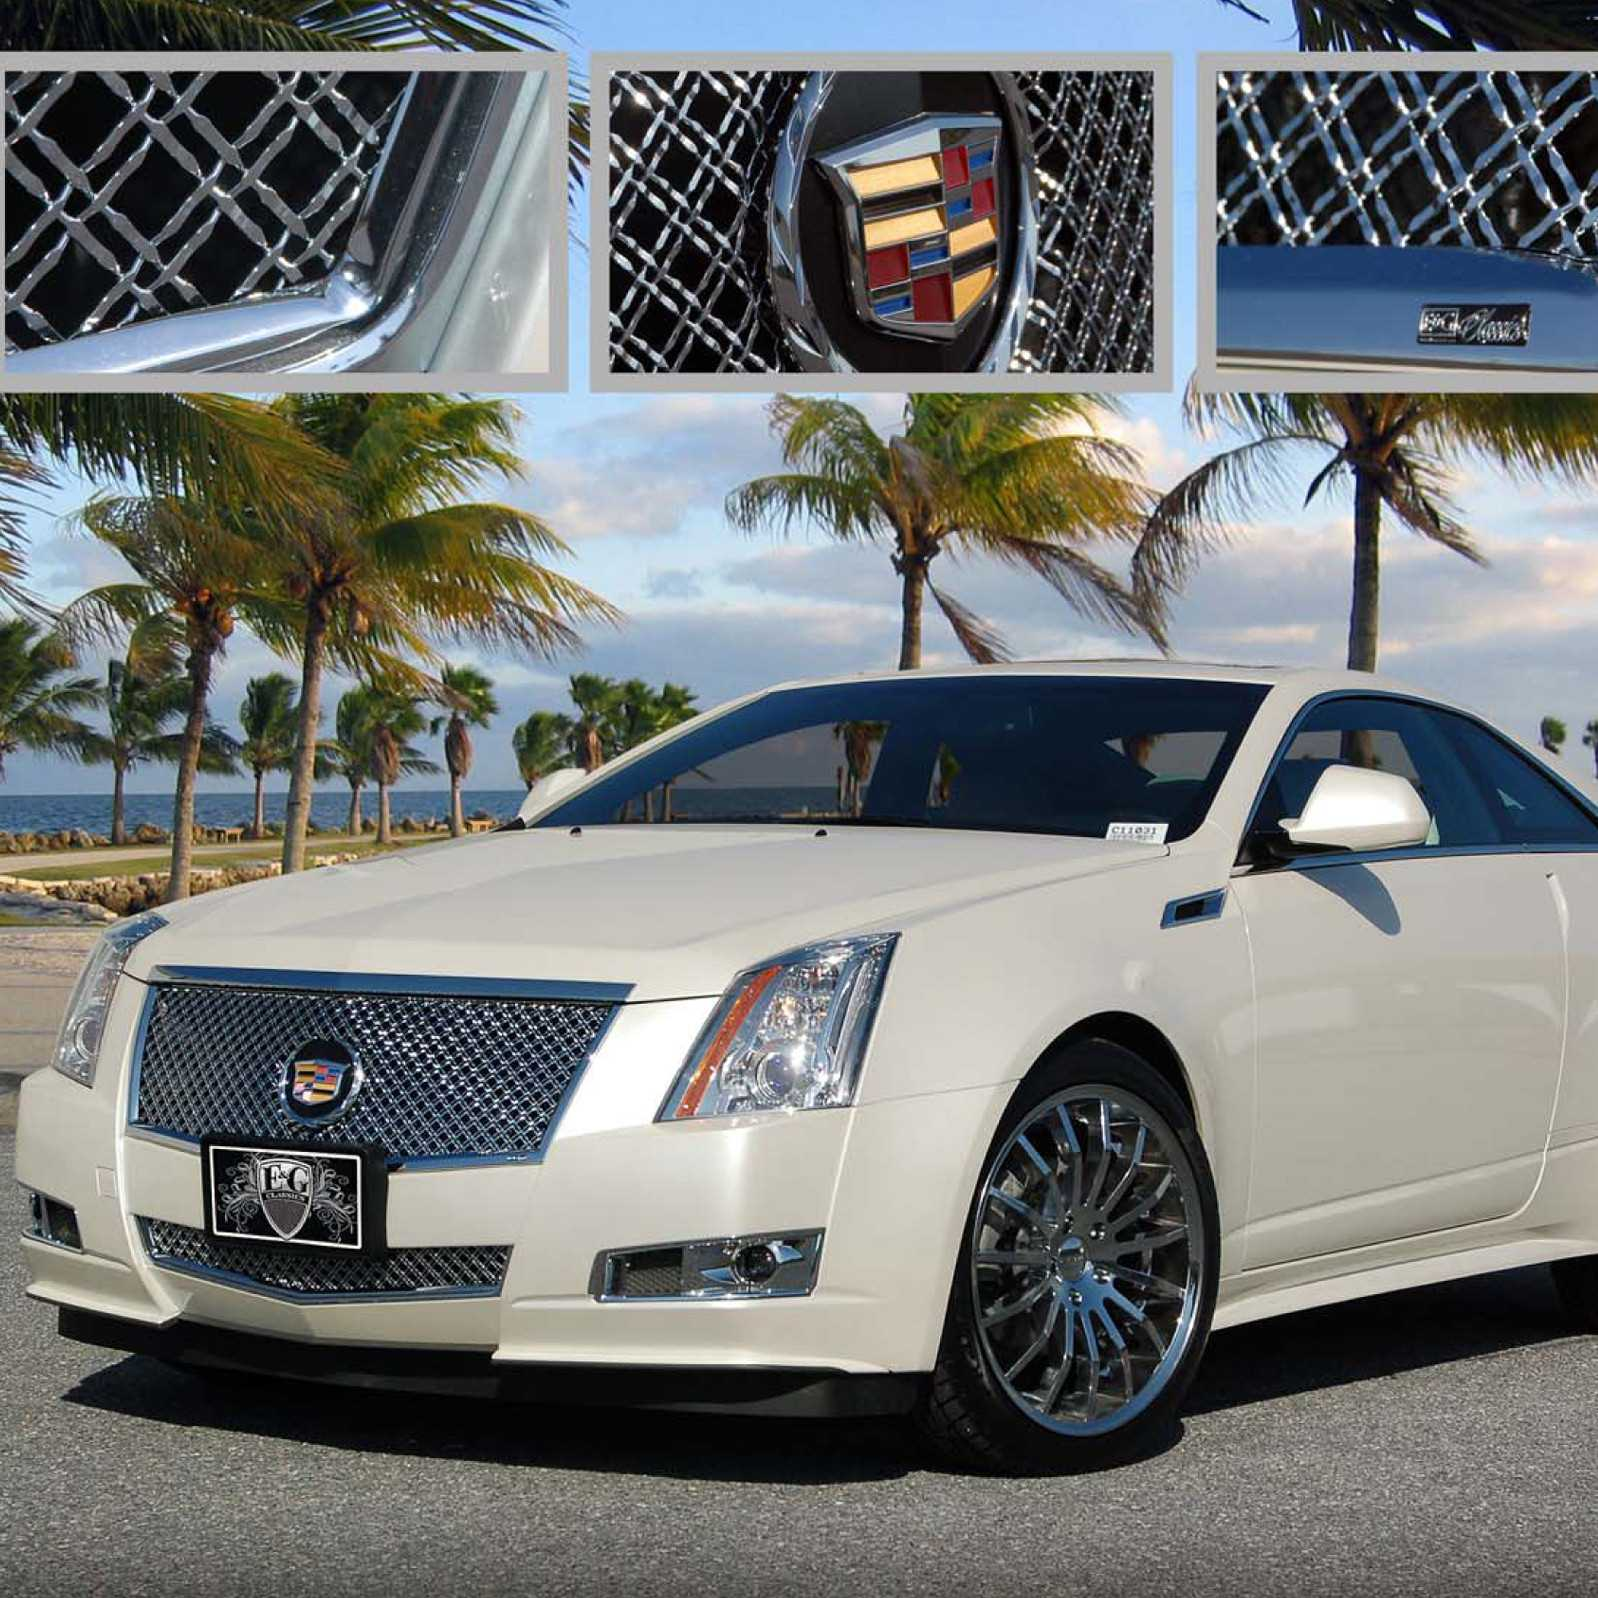 Cadillac Cts 2013 Price: E&G Classics 2008-2013 Cadillac CTS Grille Classic Heavy Mesh Grille